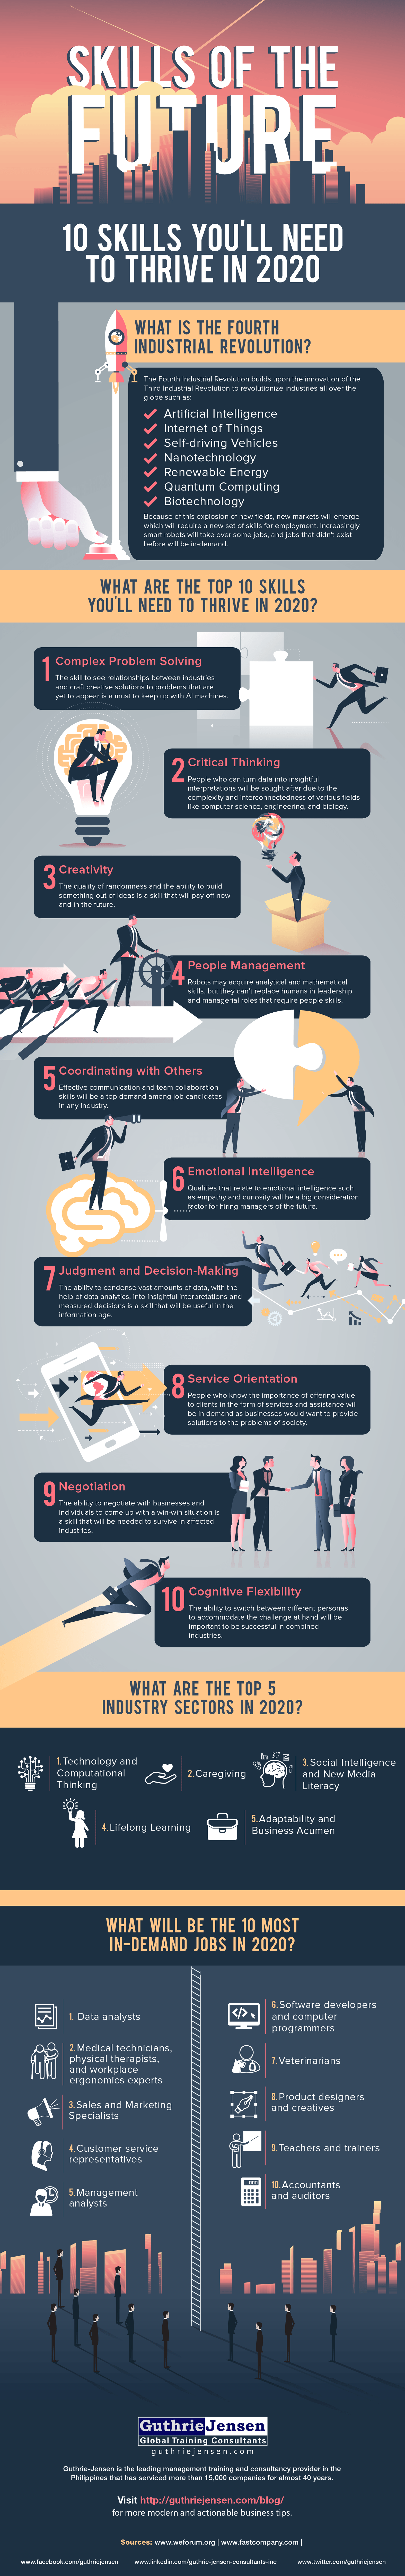 10 Skills That Every Employee Will Need To Thrive in 2020 Infographic Image